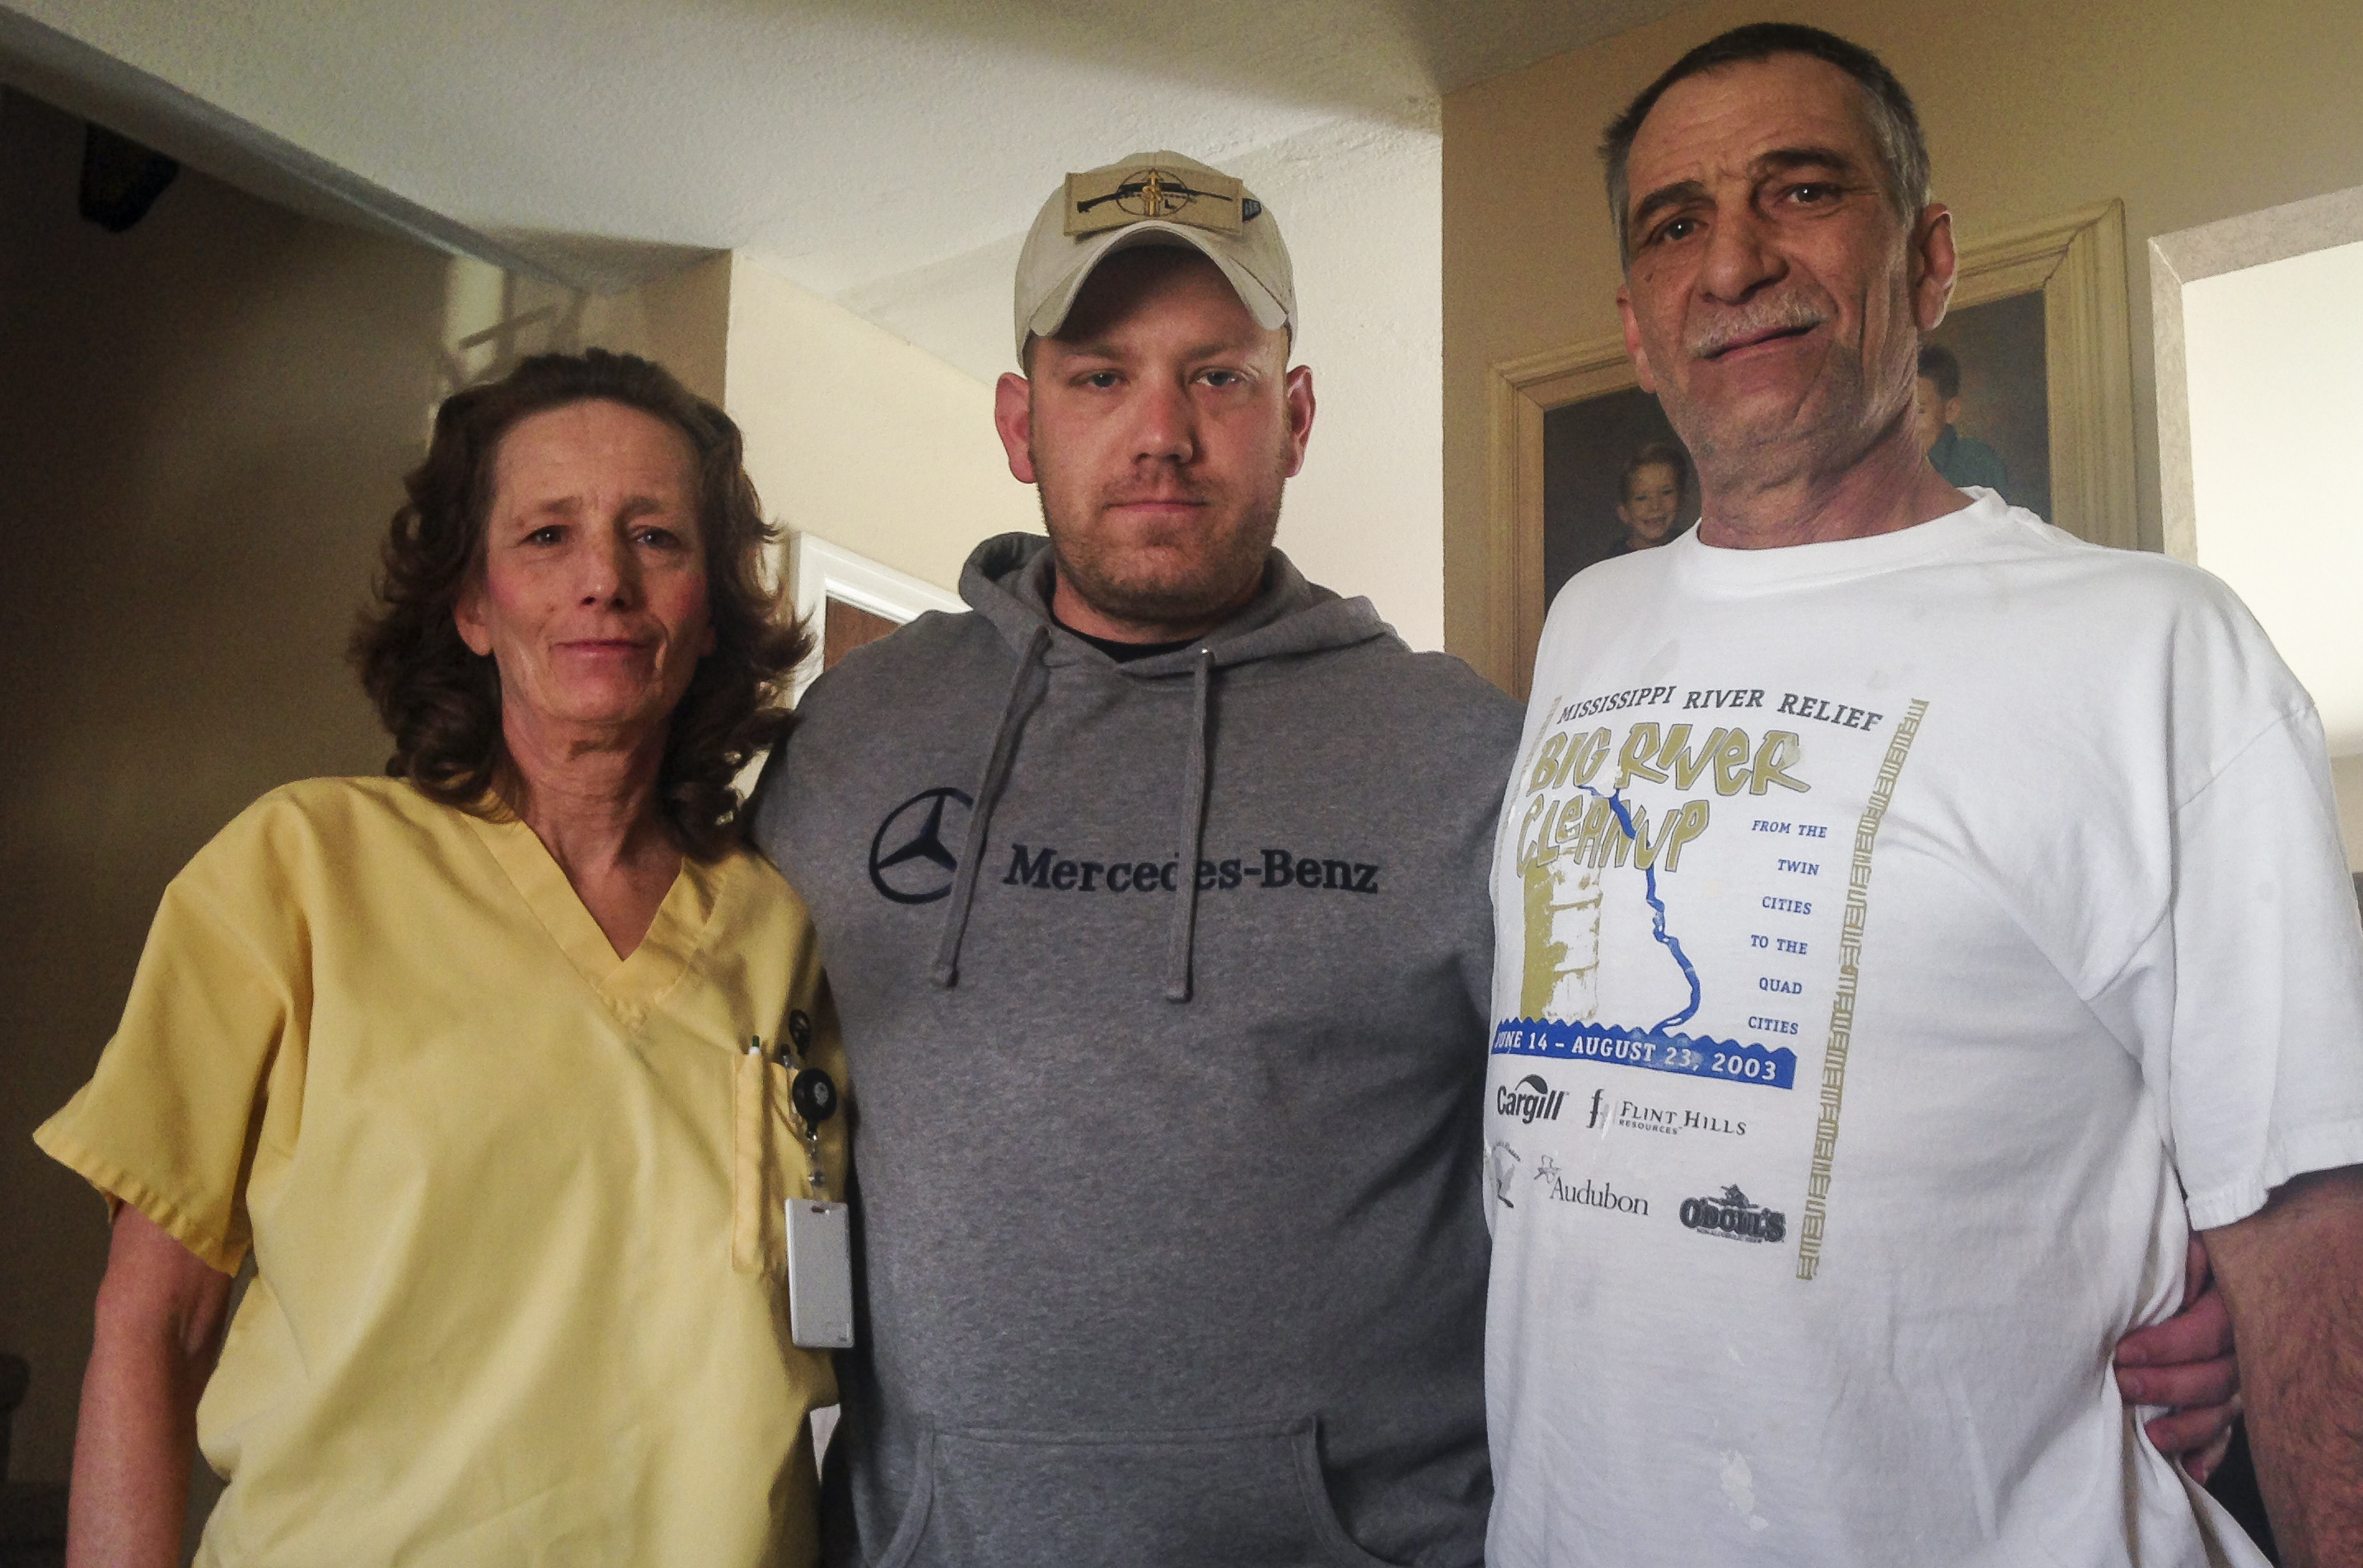 Photo: PTSD Fort Carson 5 | Eric James and family